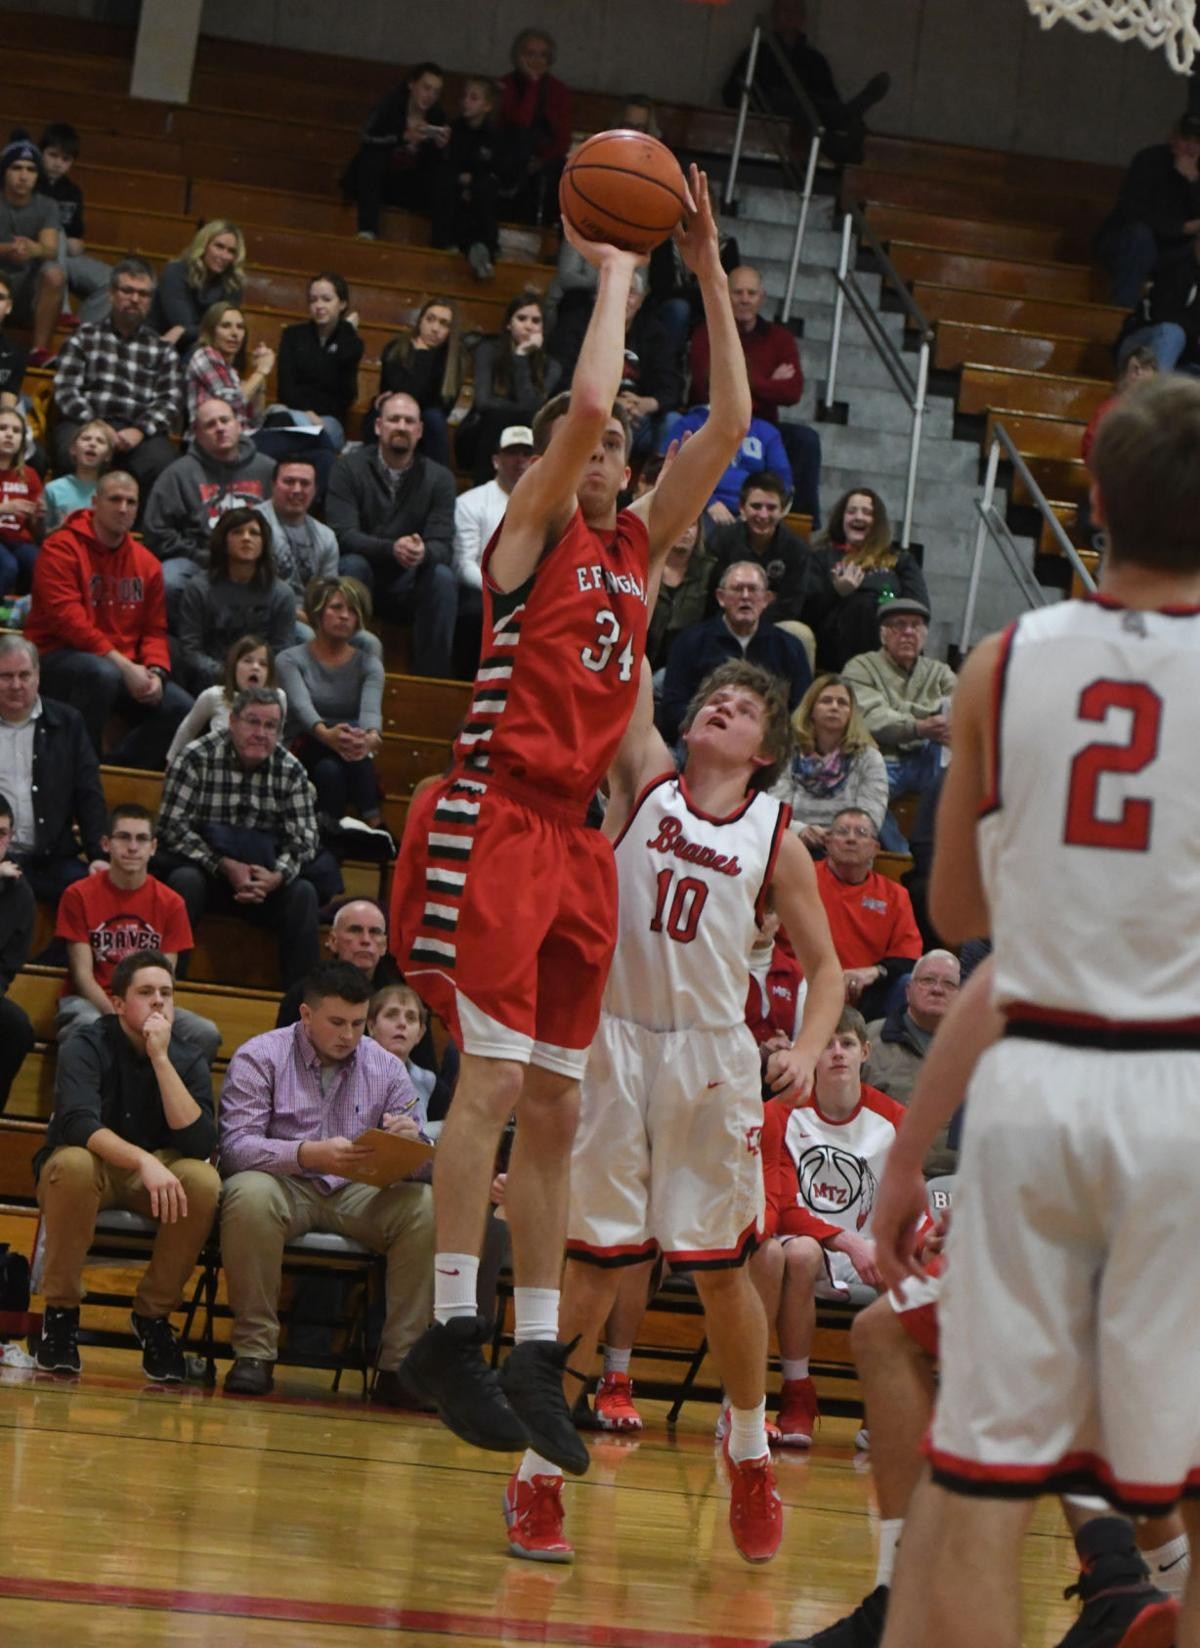 BKO Zion Effingham Boys  Basketball 1658 02.10.17.JPG